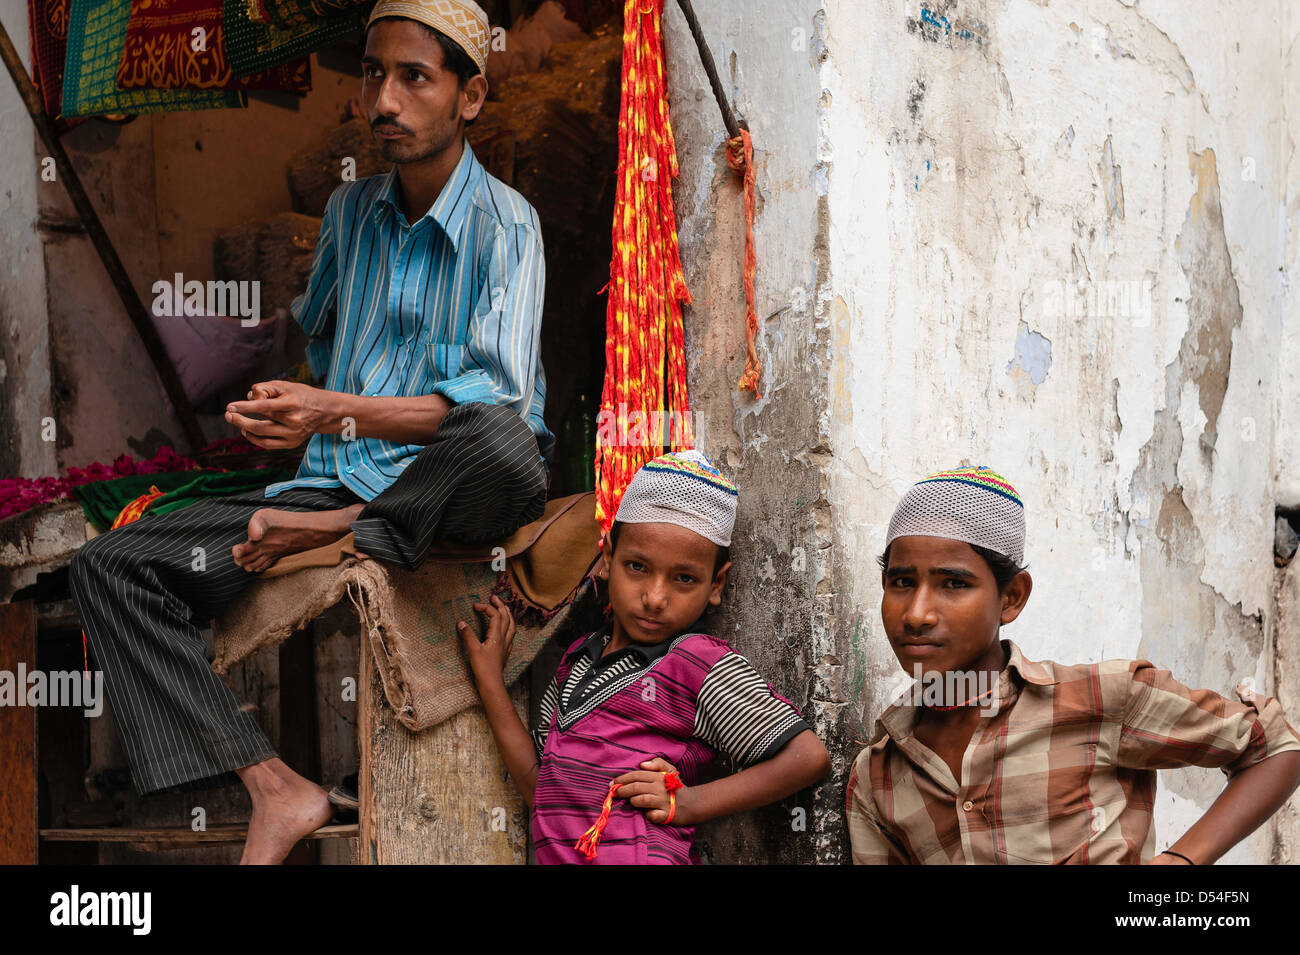 Local shopkeeper and his sons sell religious trinkets outside the mosque in Nizamuddin, Old Delhi, India. - Stock Image